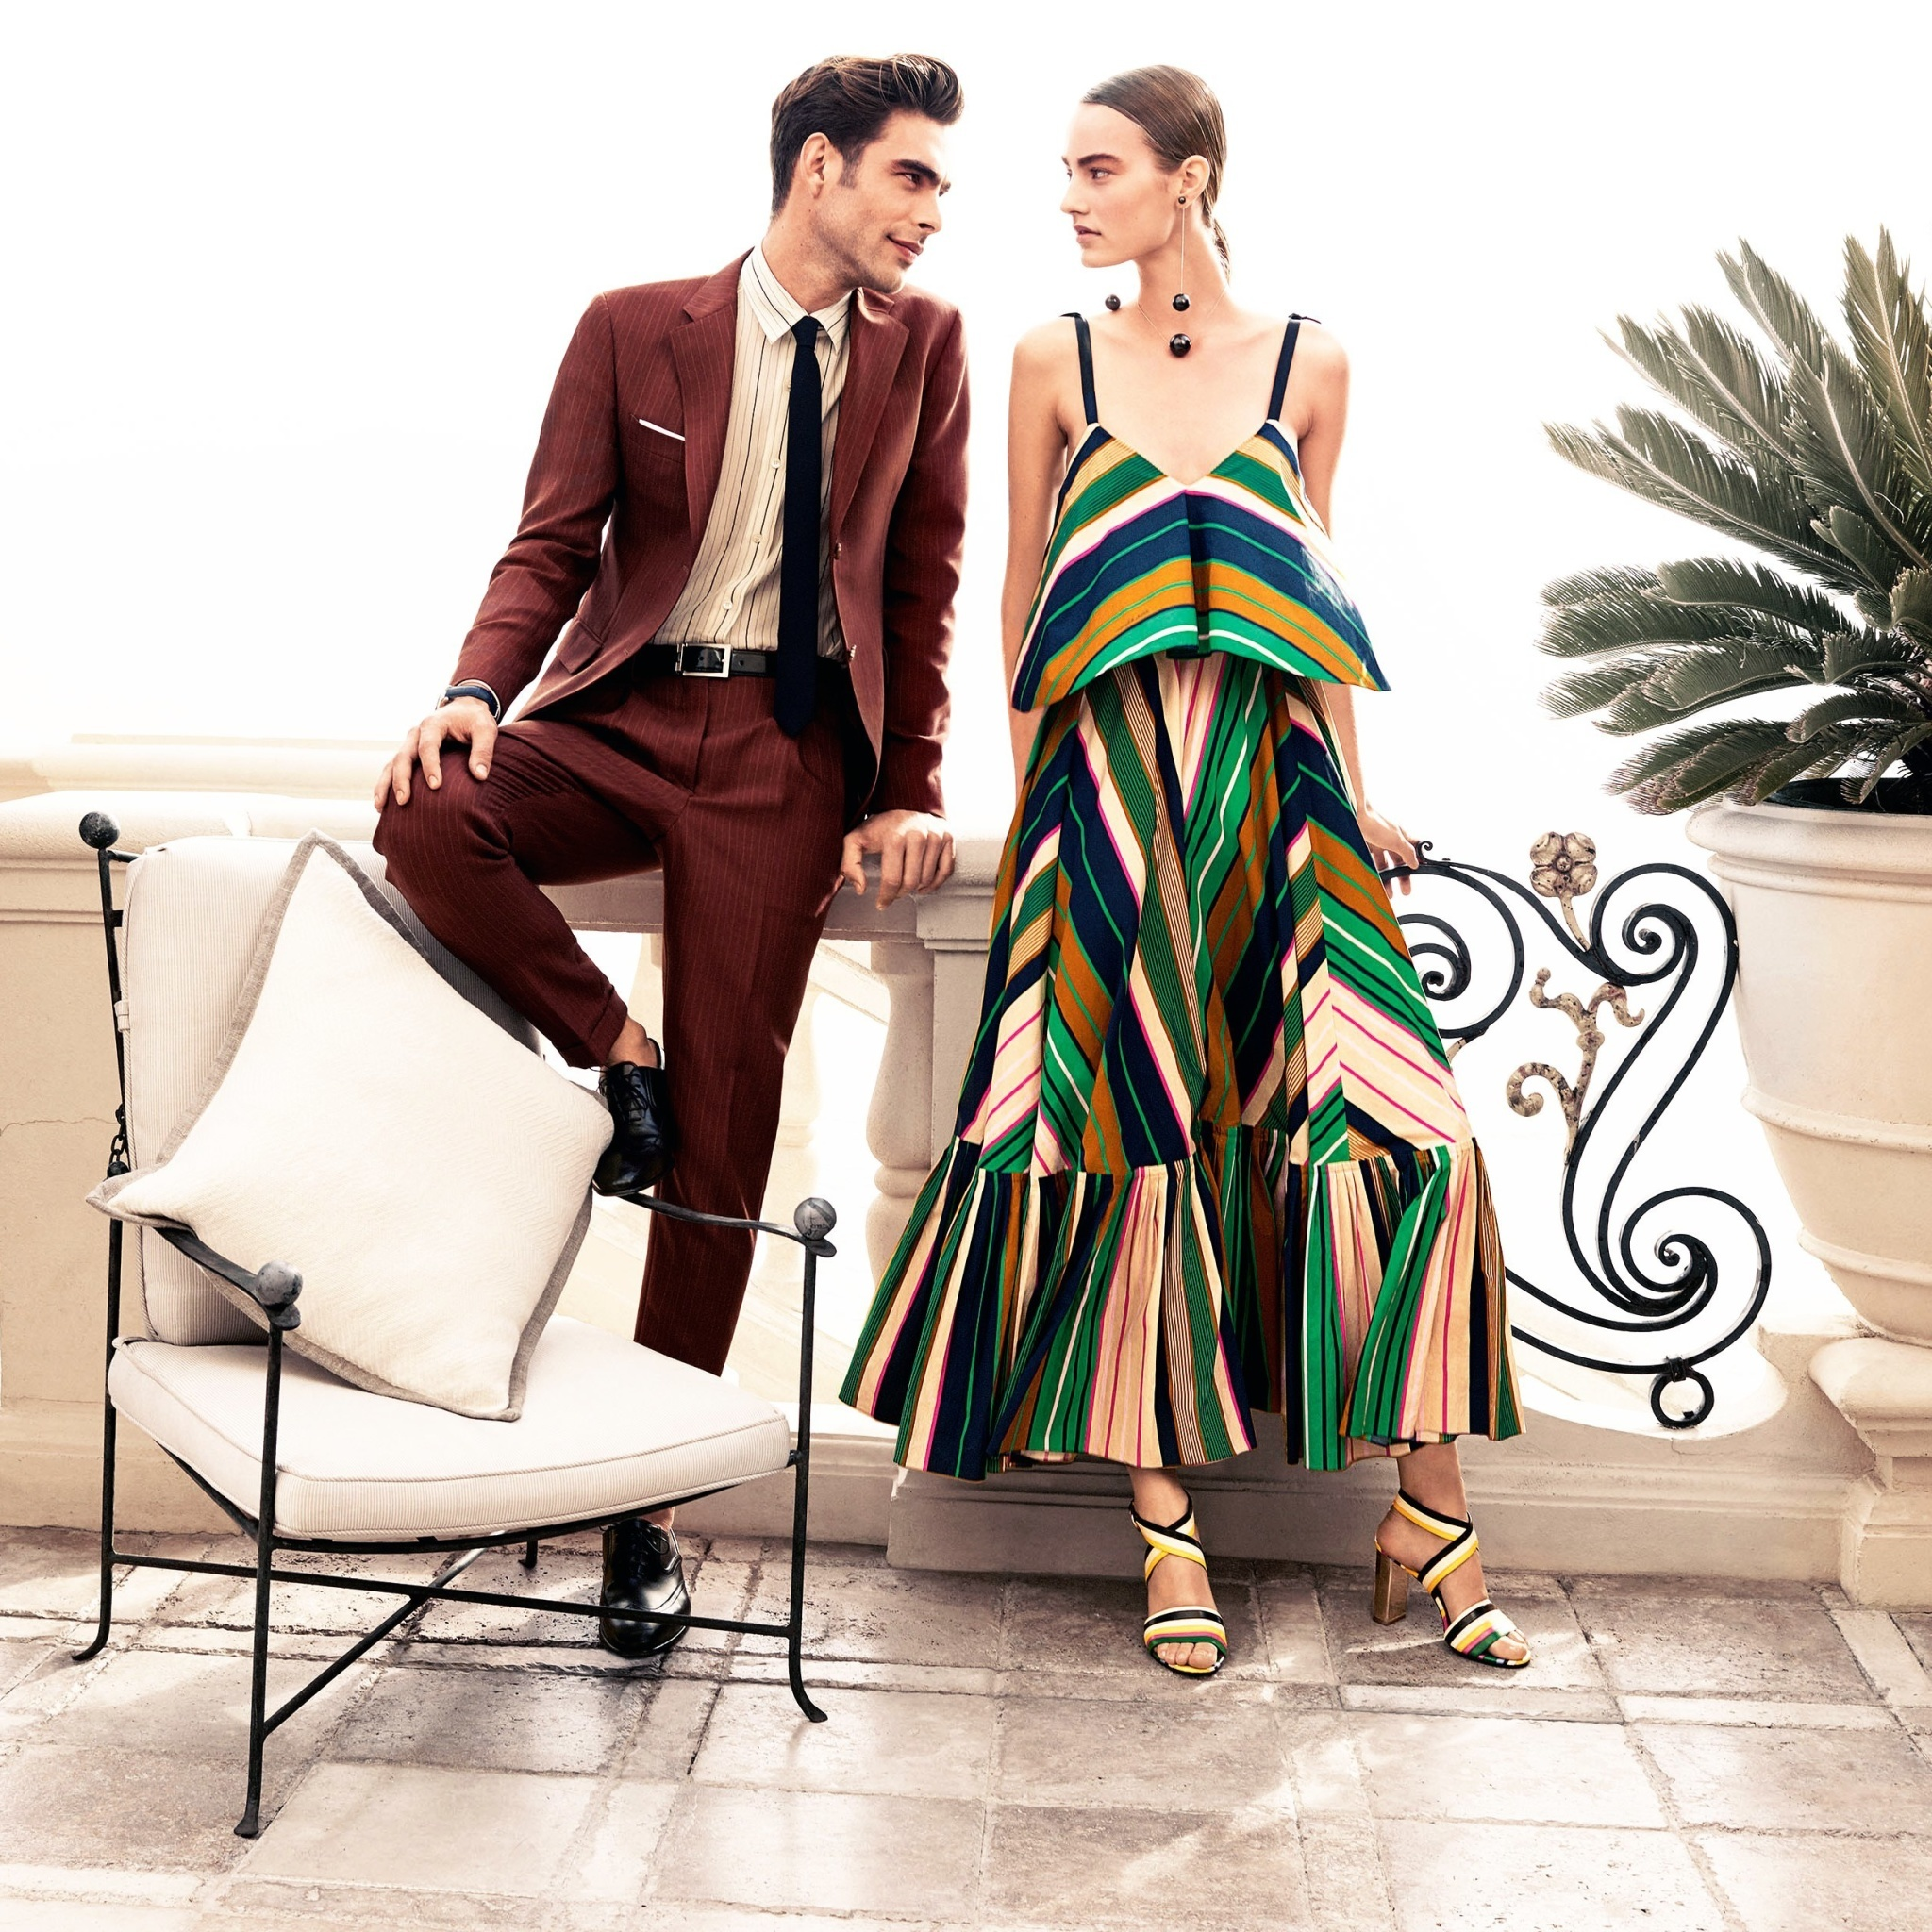 Salvatore Ferragamo Summer Fashion wallpaper 2048x2048